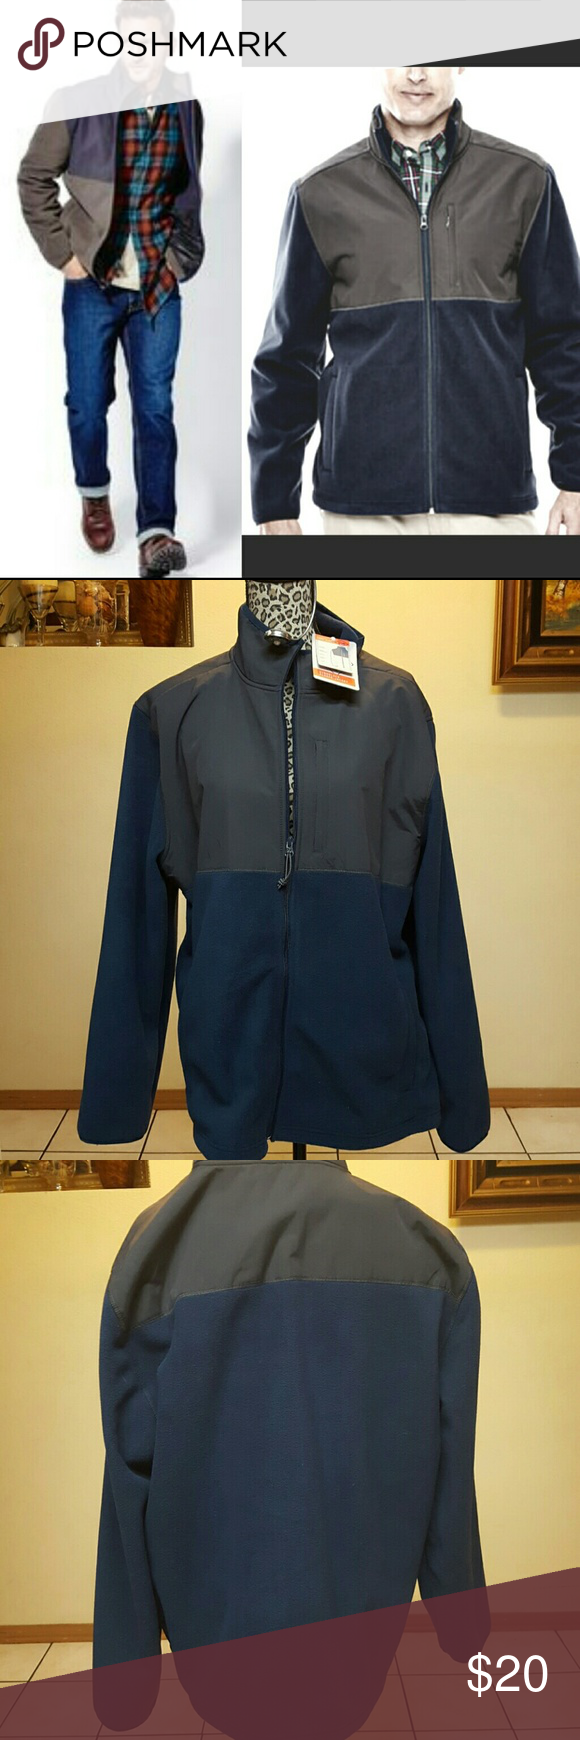 St. John's Bay Windblock Fleece JacketNWT